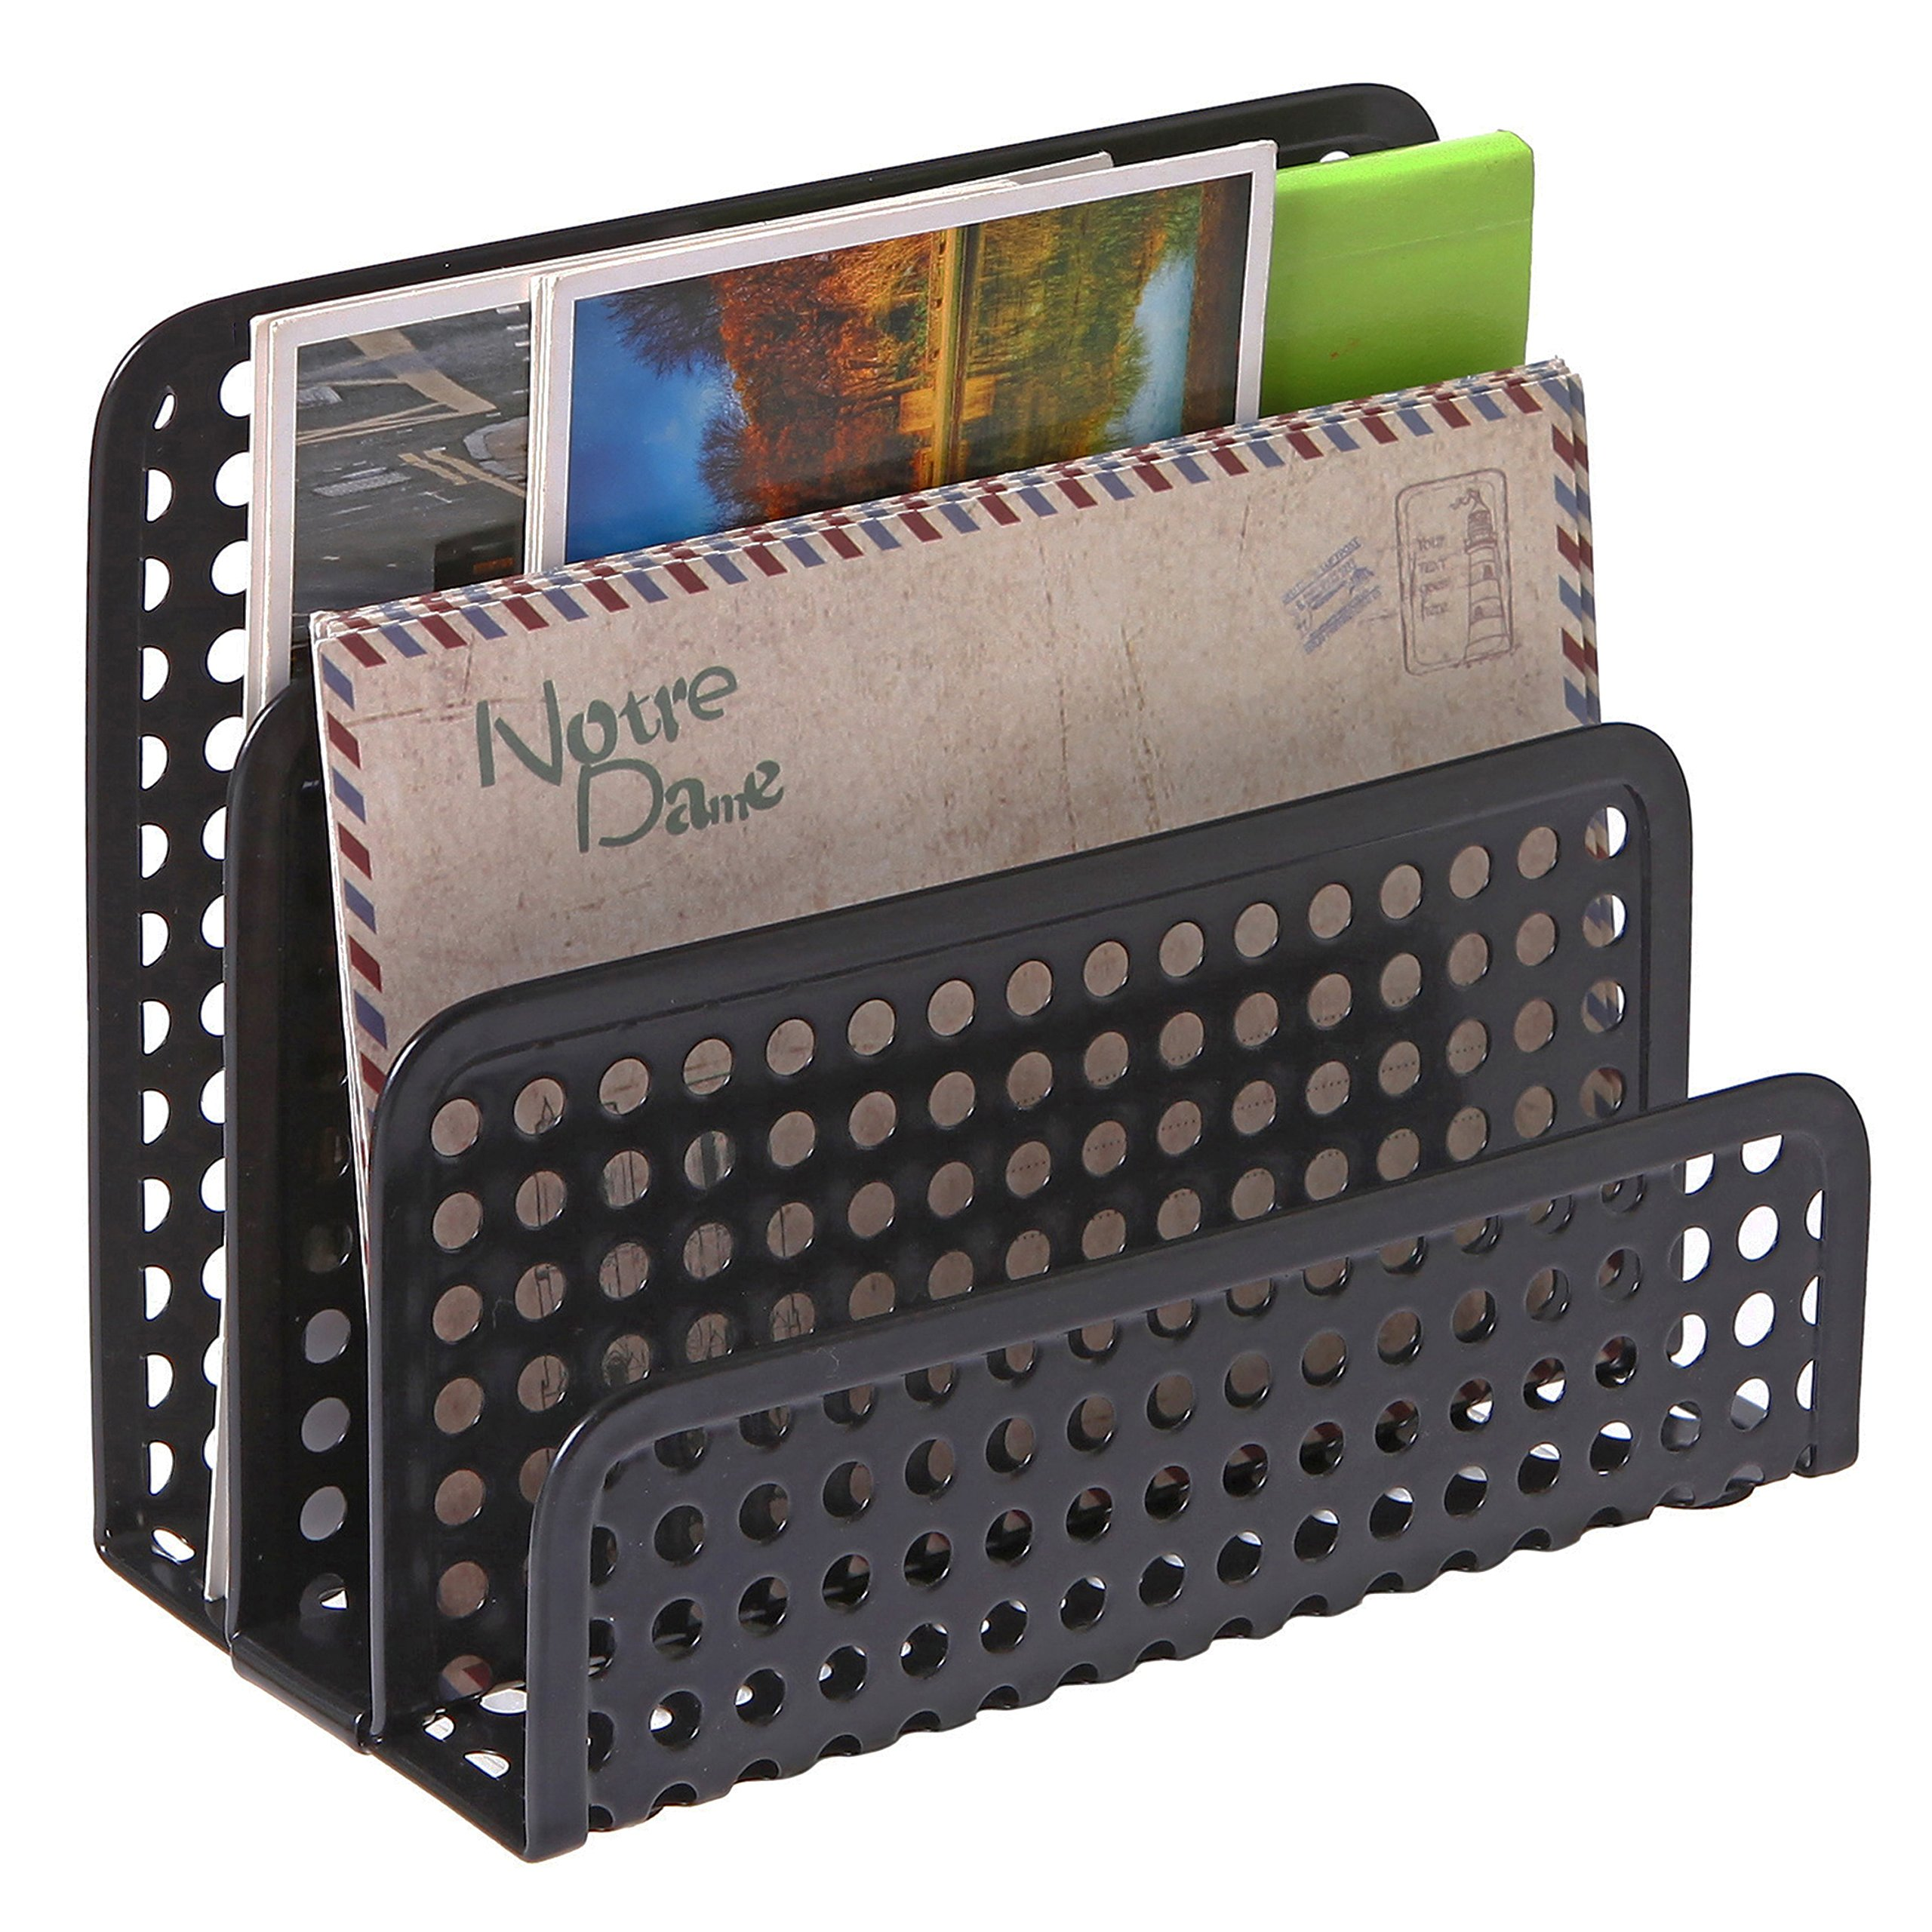 3 Slot Perforated Metal Mesh Mail Sorter Rack, Desktop Letter and Document Organizer, Black